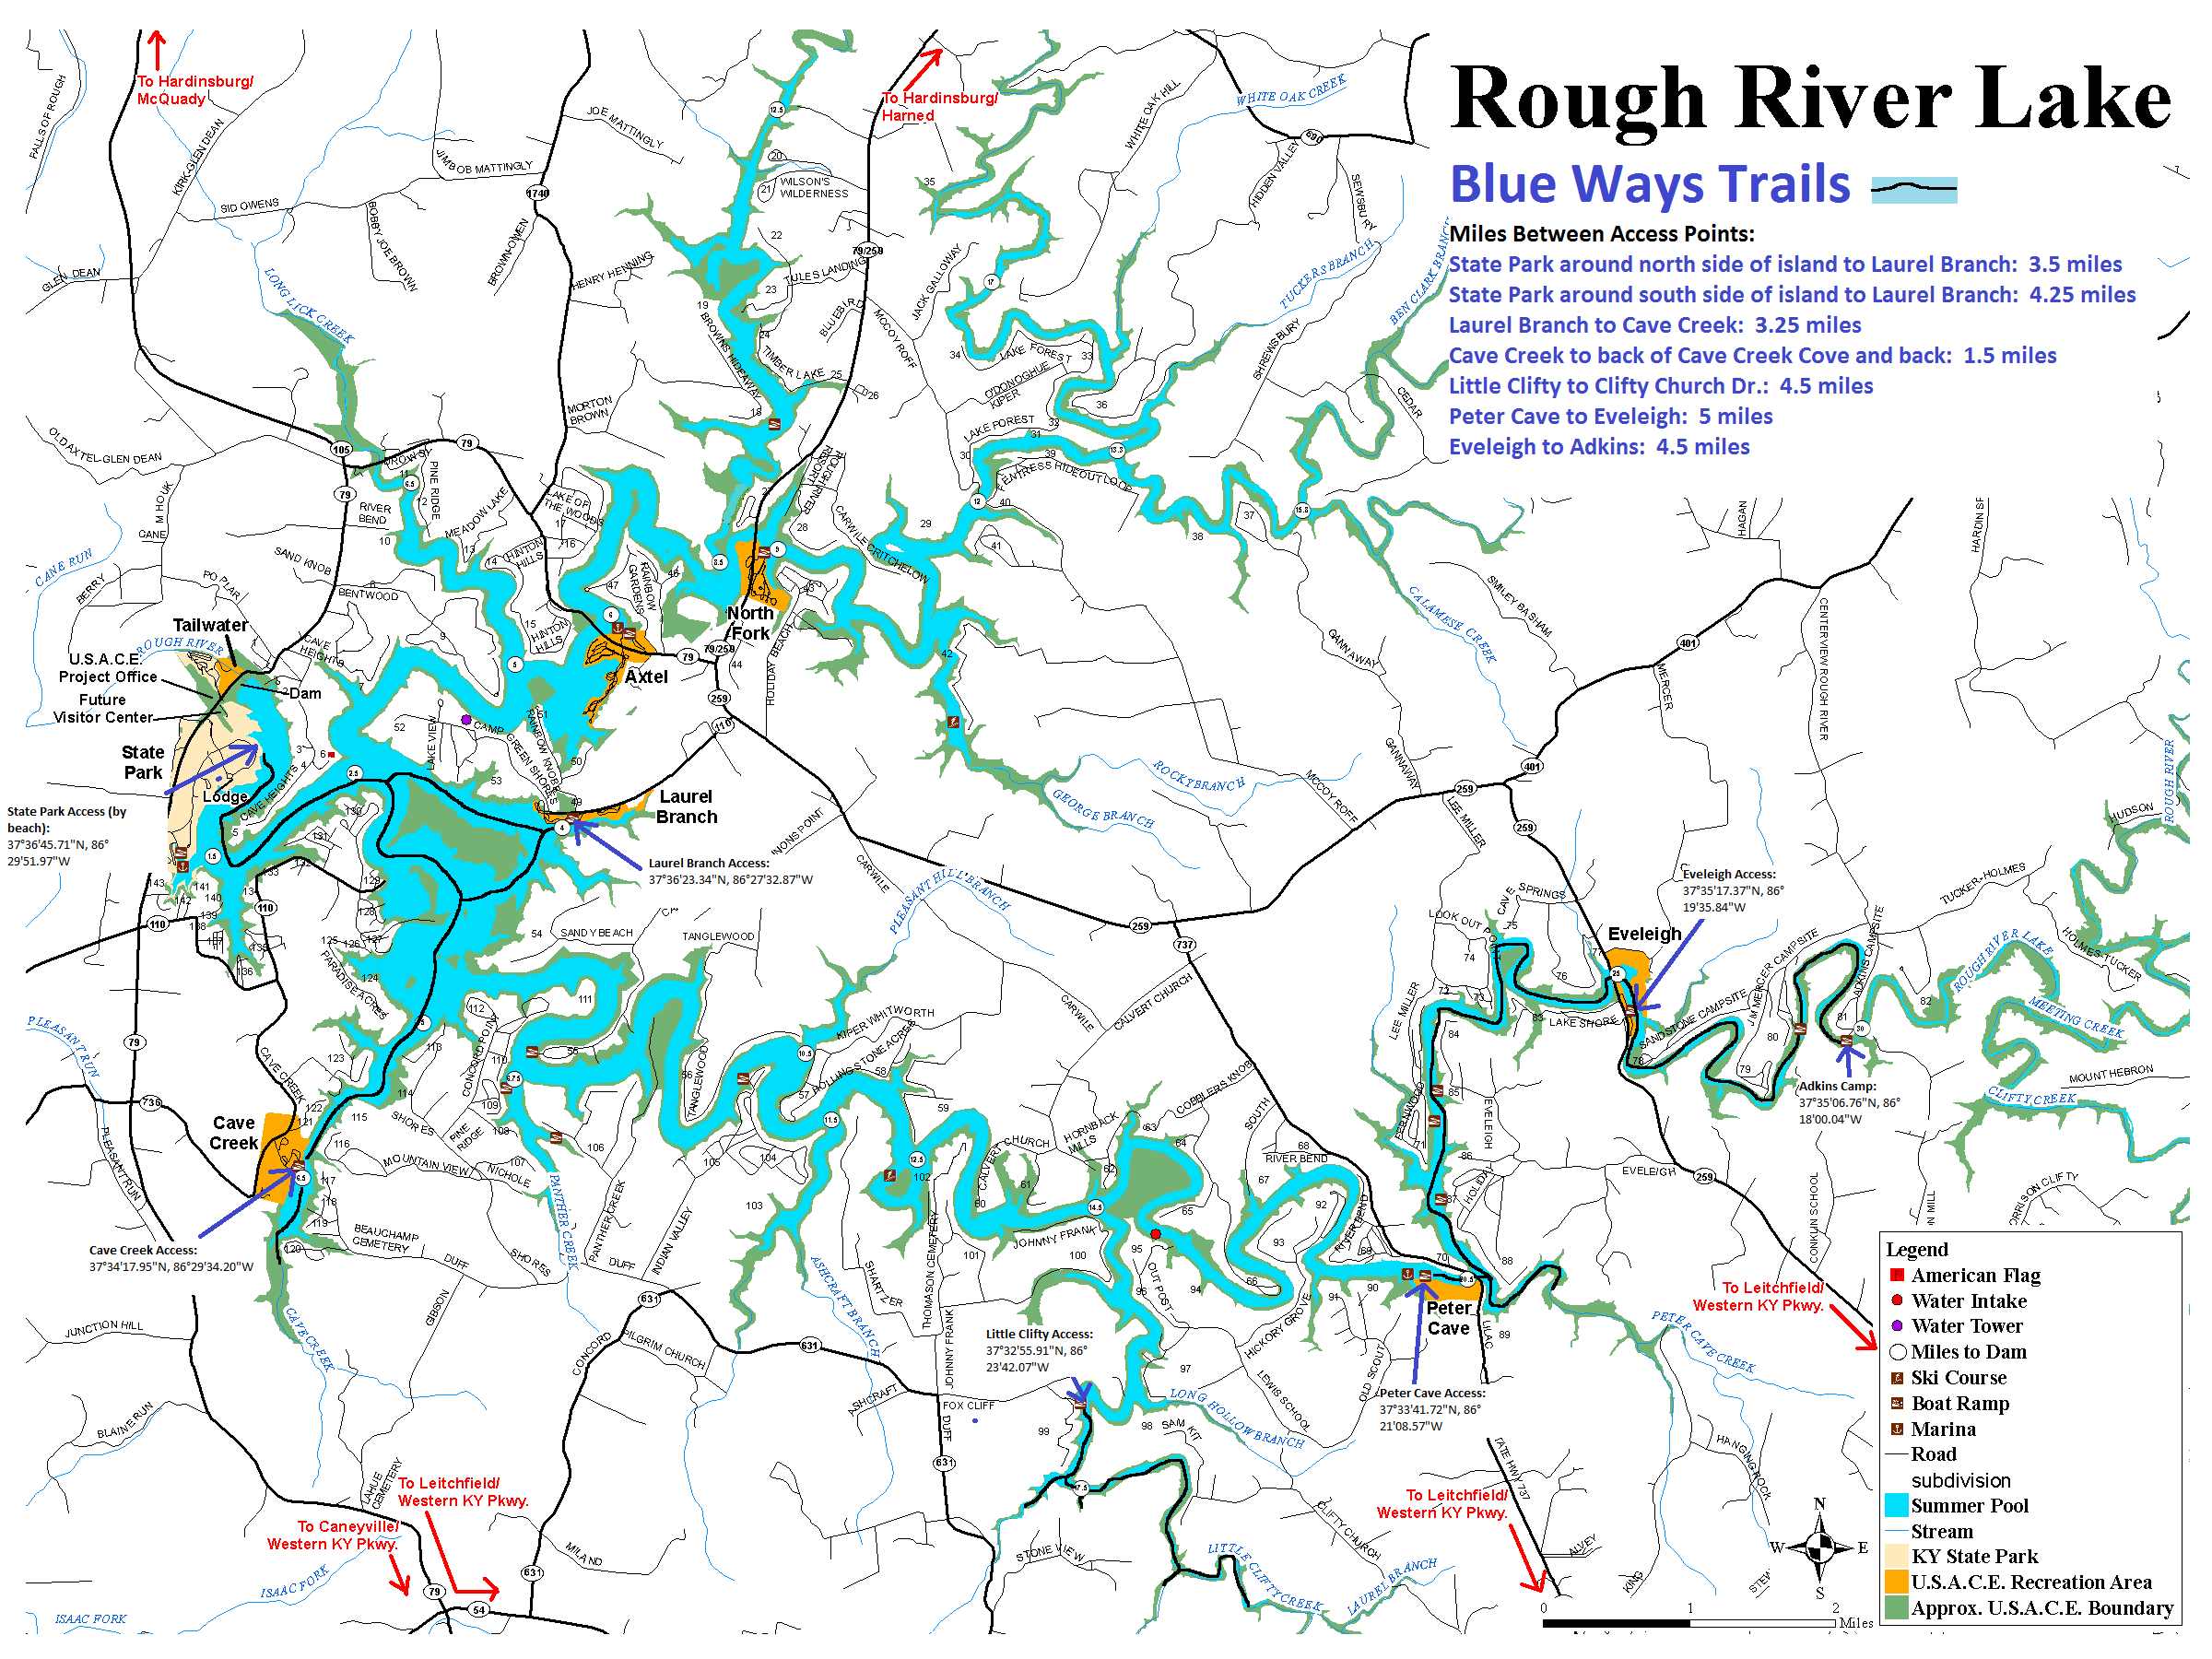 New Kayak Trail Map For Rough River Lake Greater Rough River Realty Group